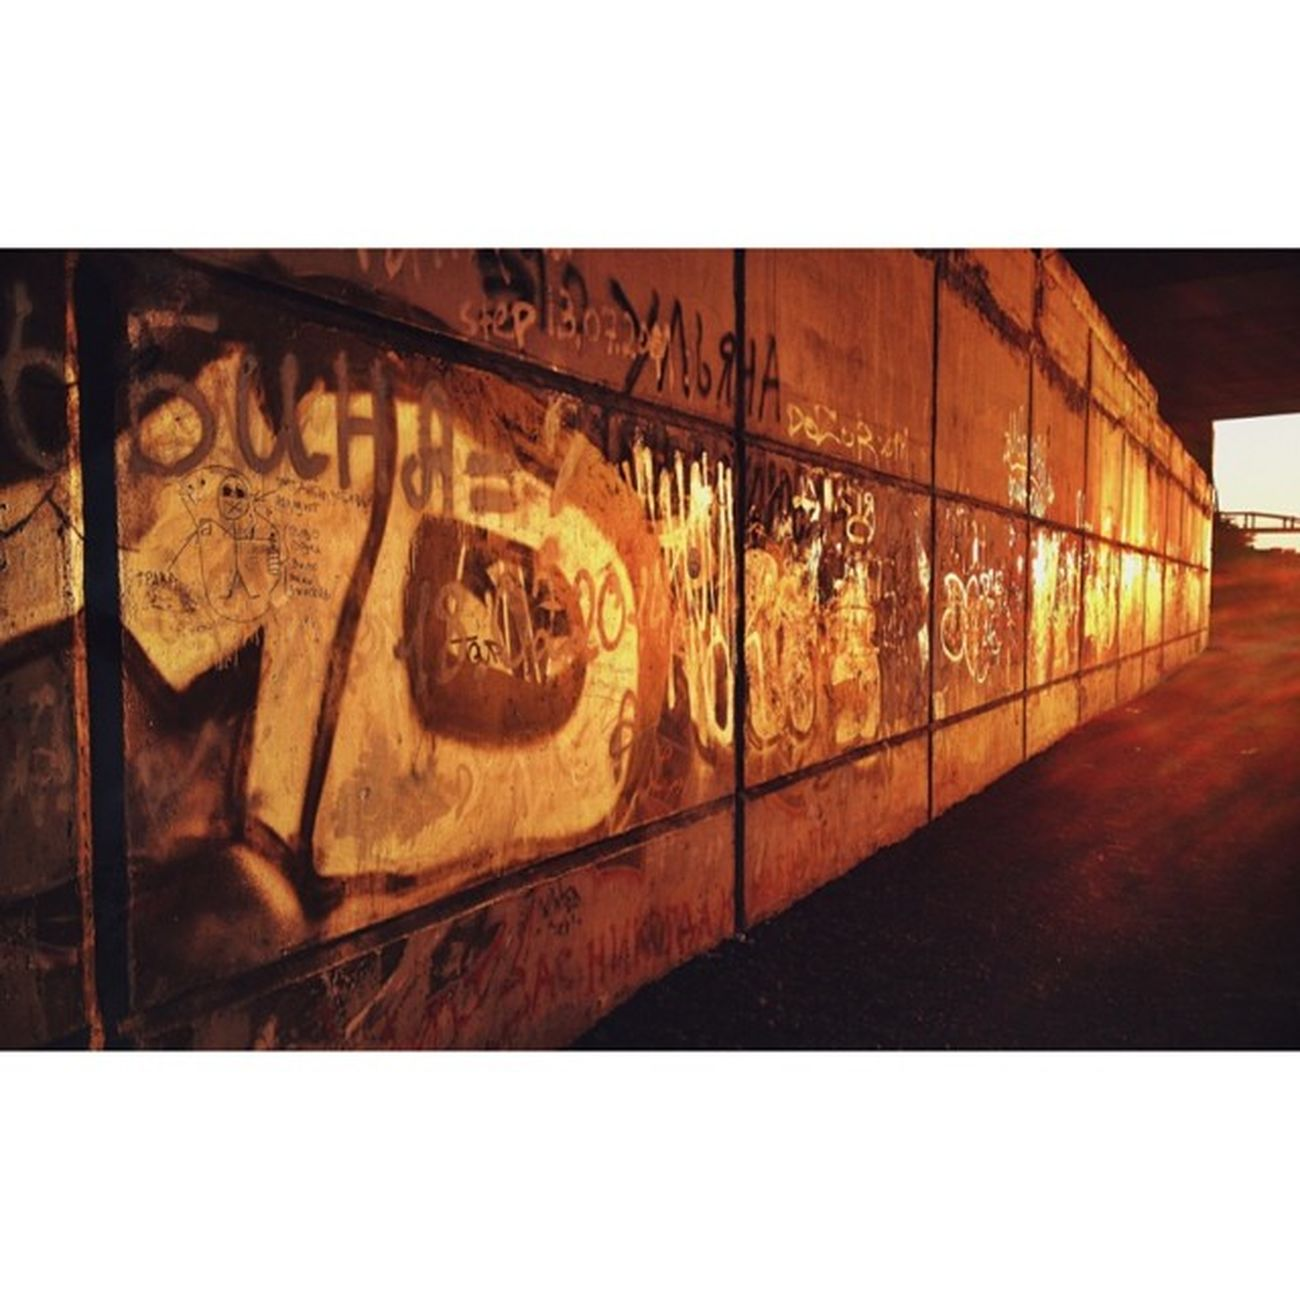 Just a graffiti wall under the bridge ? Graffiti Wall Sunset Bridge follow russia siberia kemerovo unitedstatesofsiberia россия сибирь кемерово photooftheday